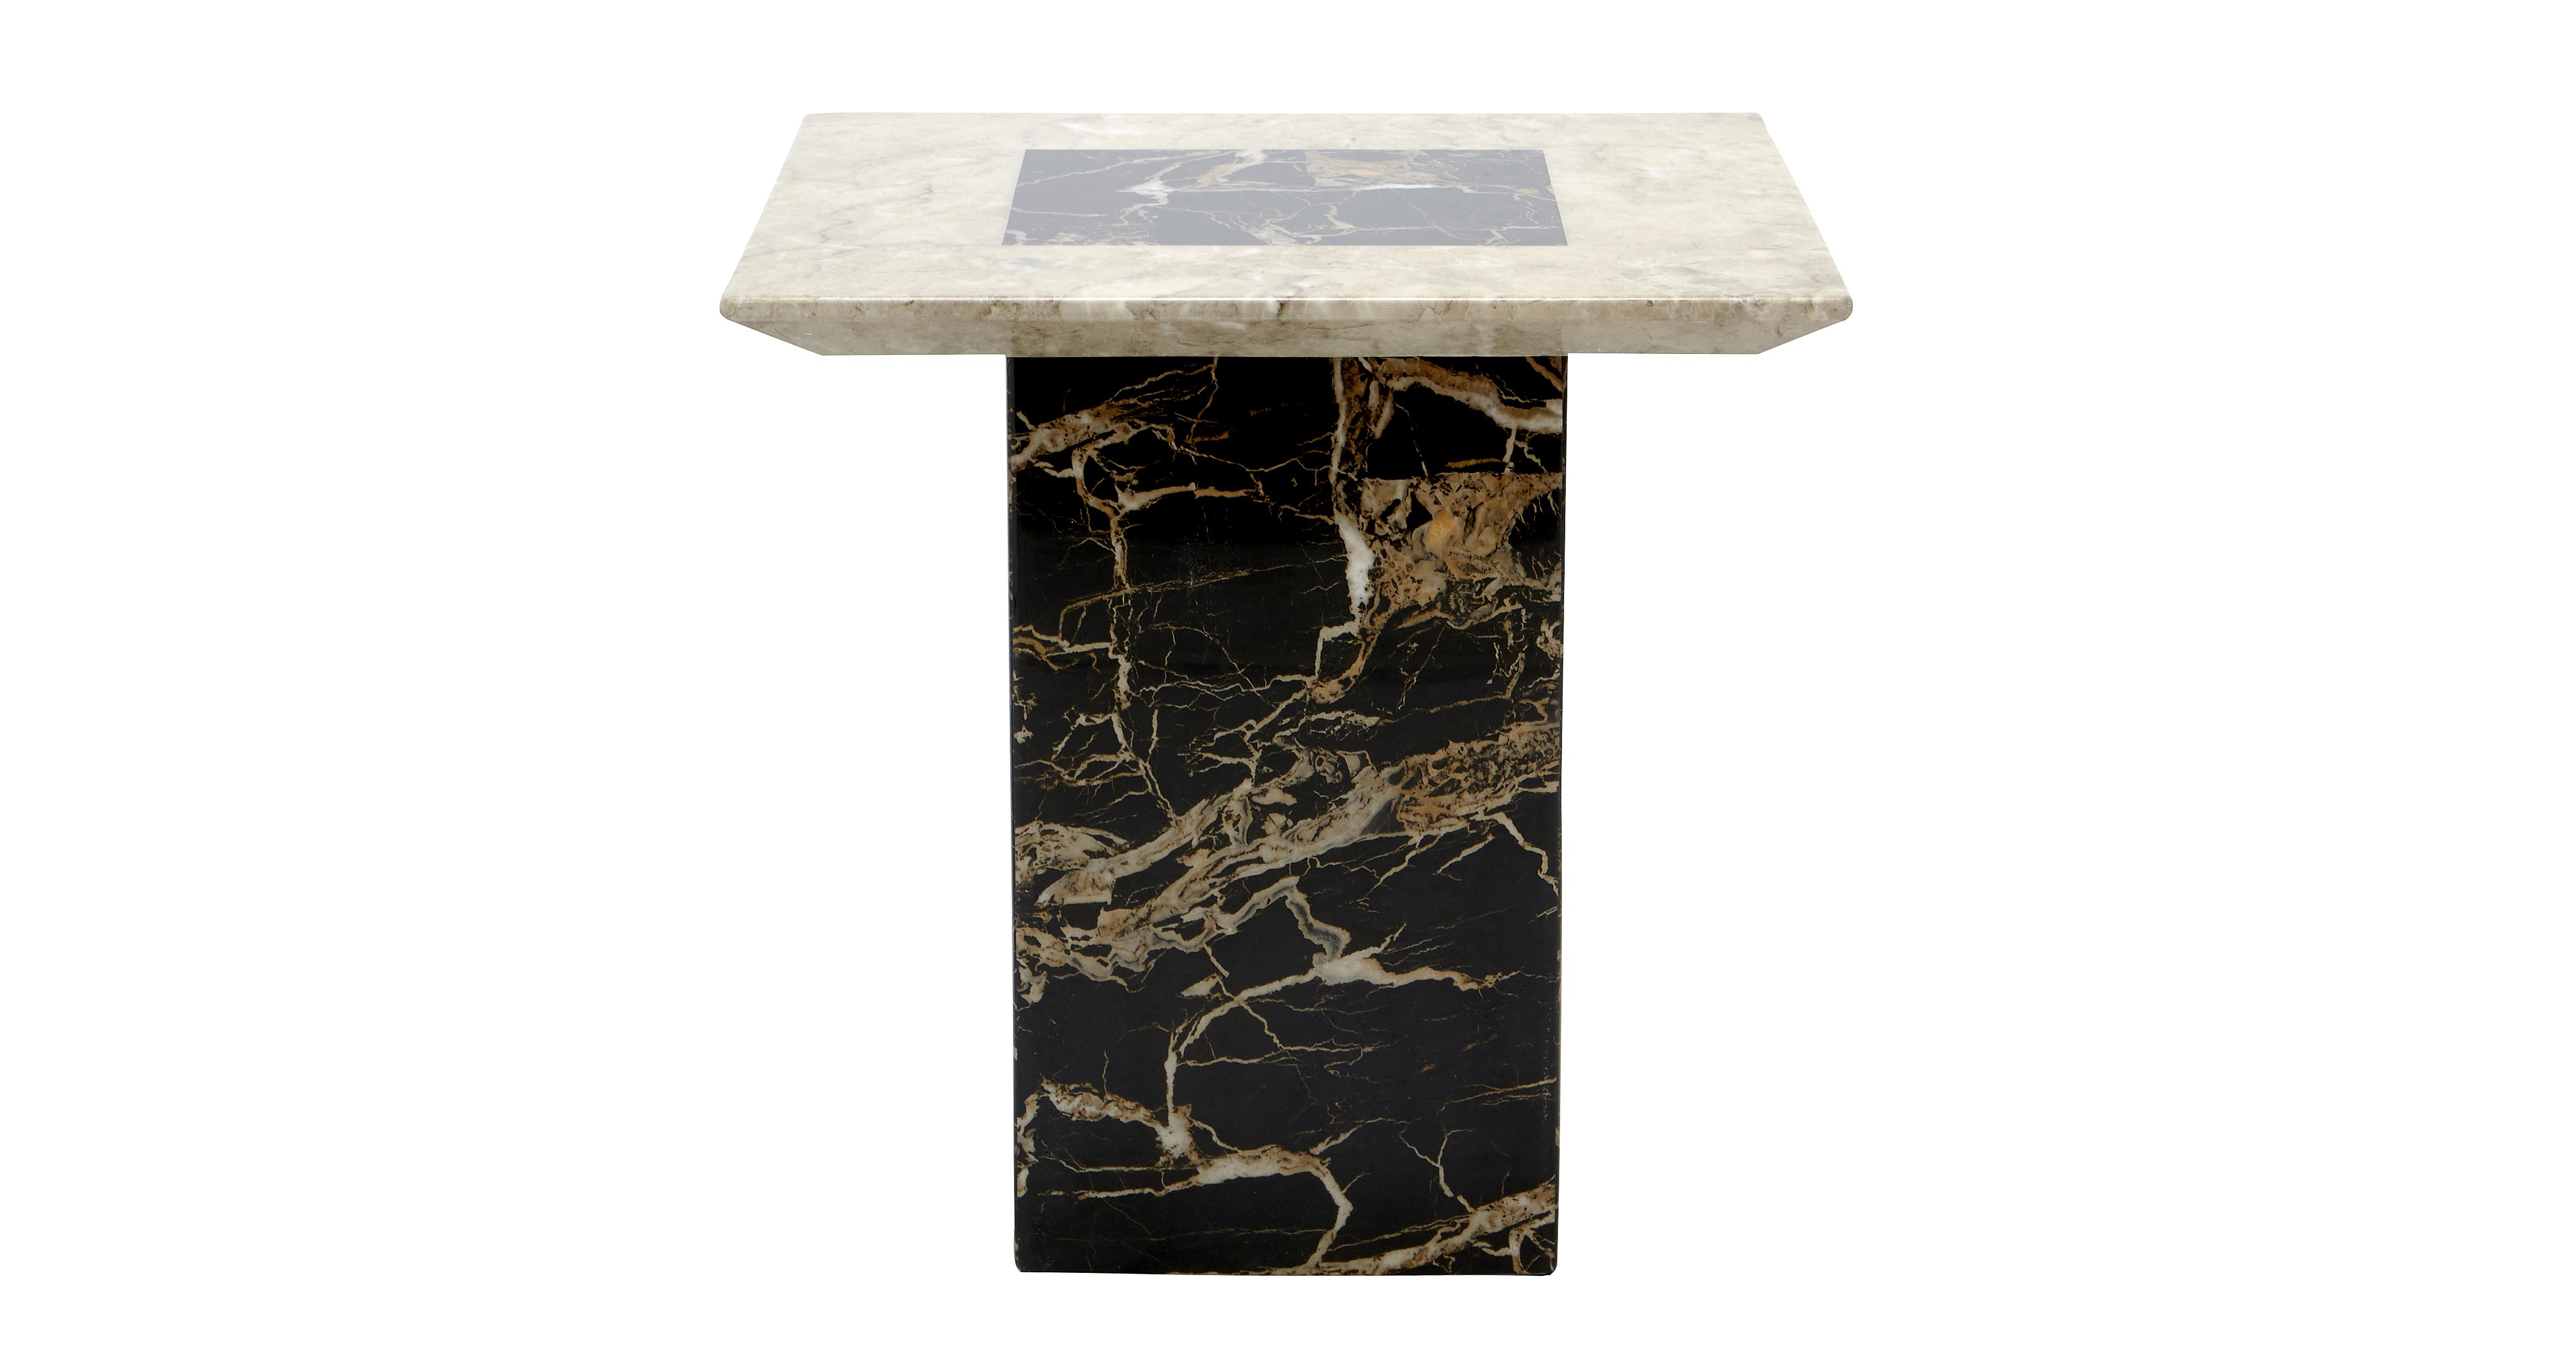 Moderno lamp table dfs for Lamp table dfs